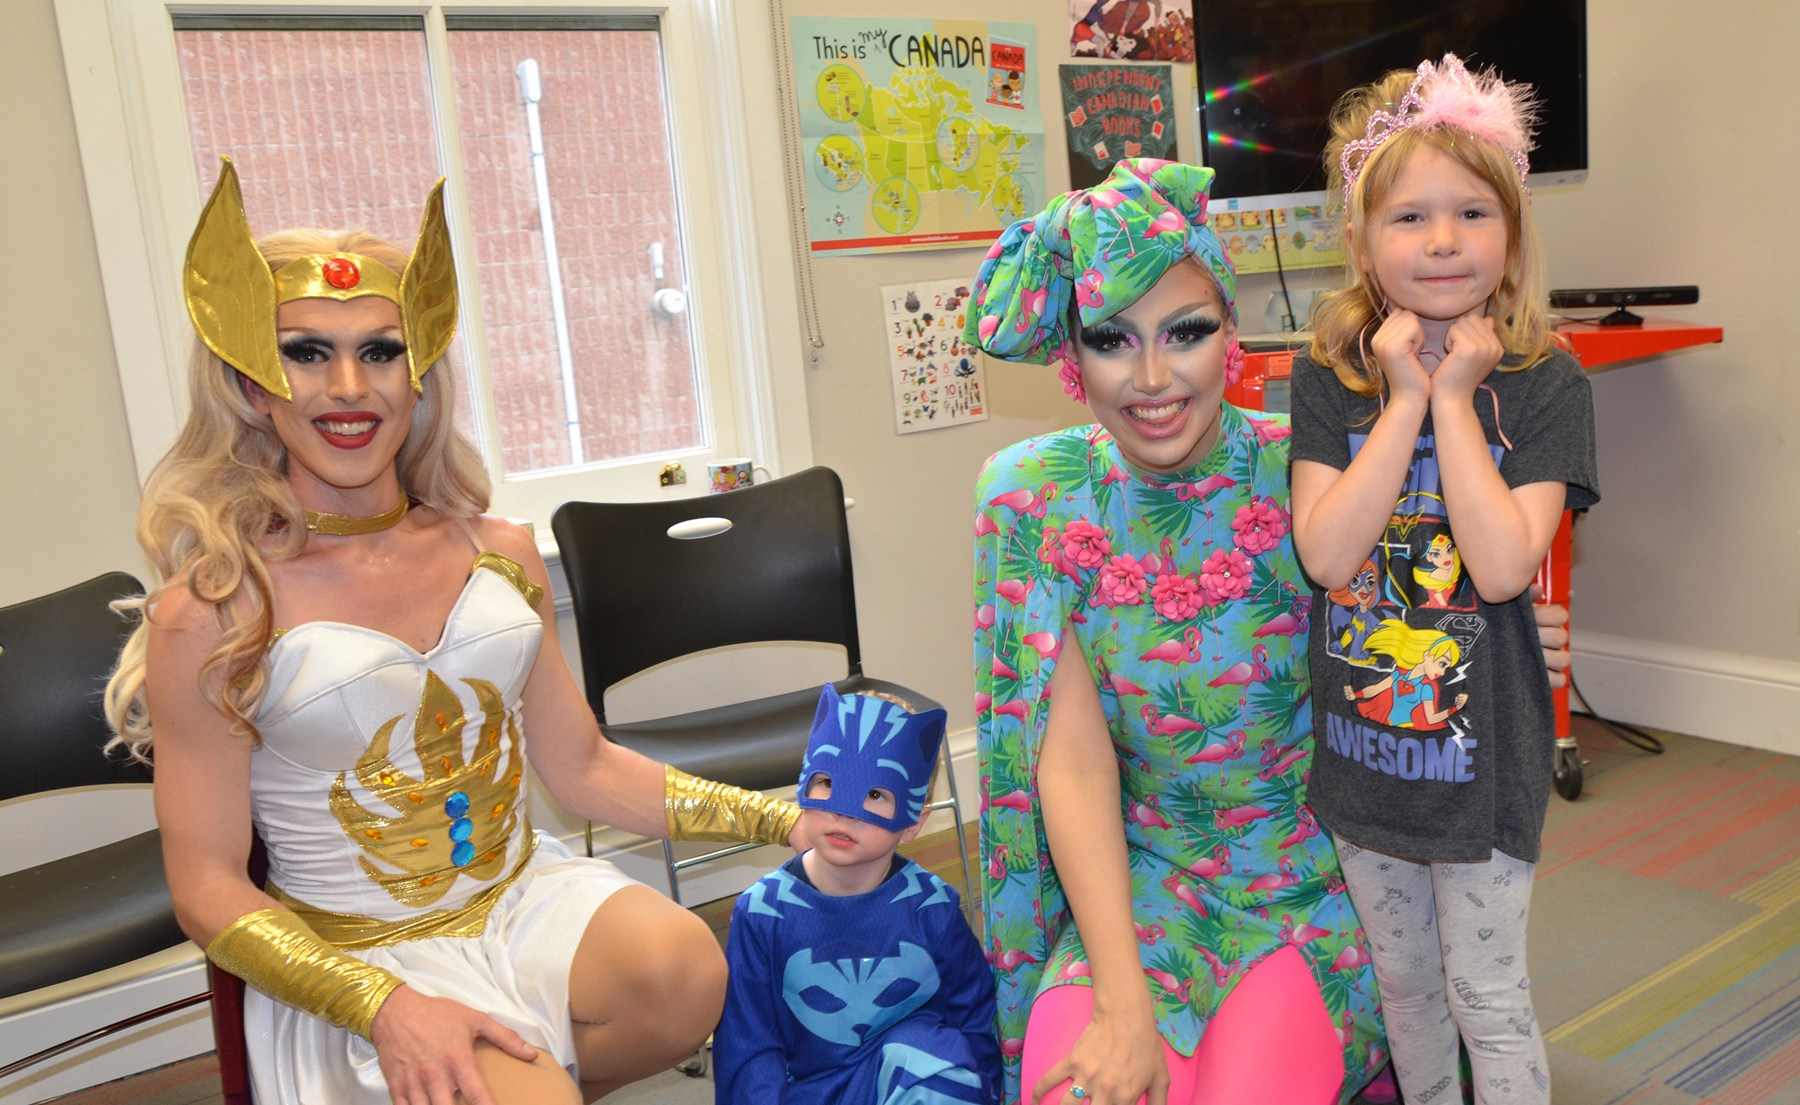 Drag Queen Storytime draws a crowd in Cannington